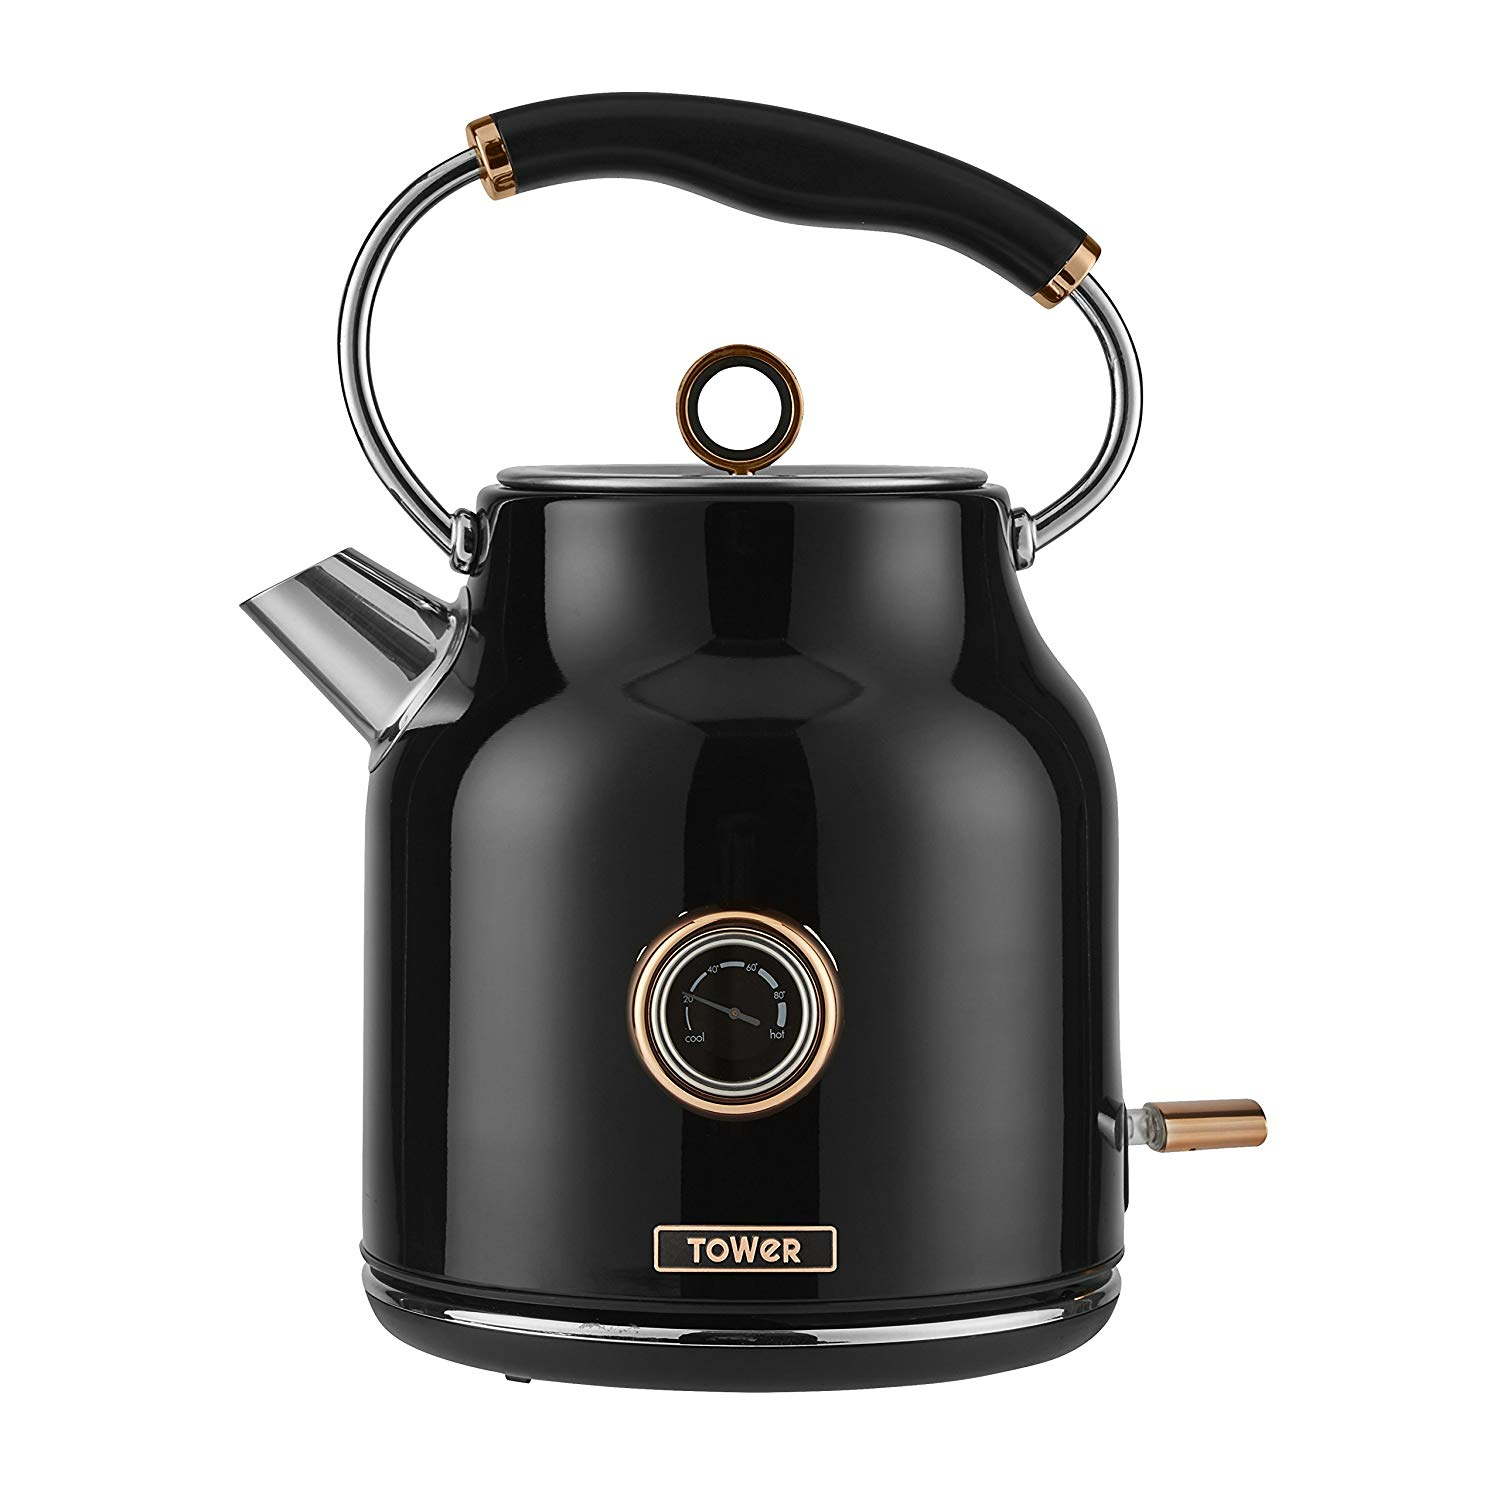 Tower T10020 Black & Rose Gold 1.7L Traditional Kettle